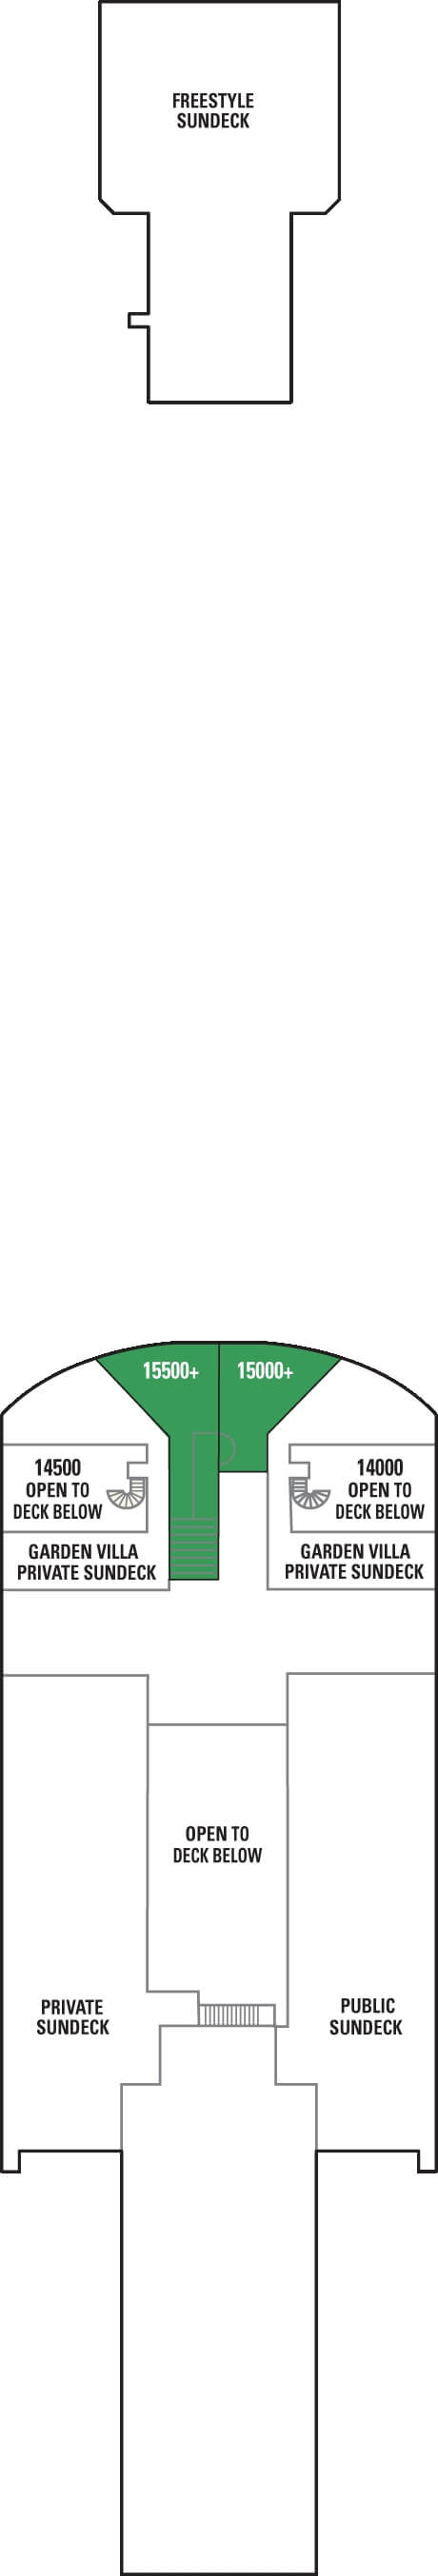 Norwegian Gem Deck 15 layout